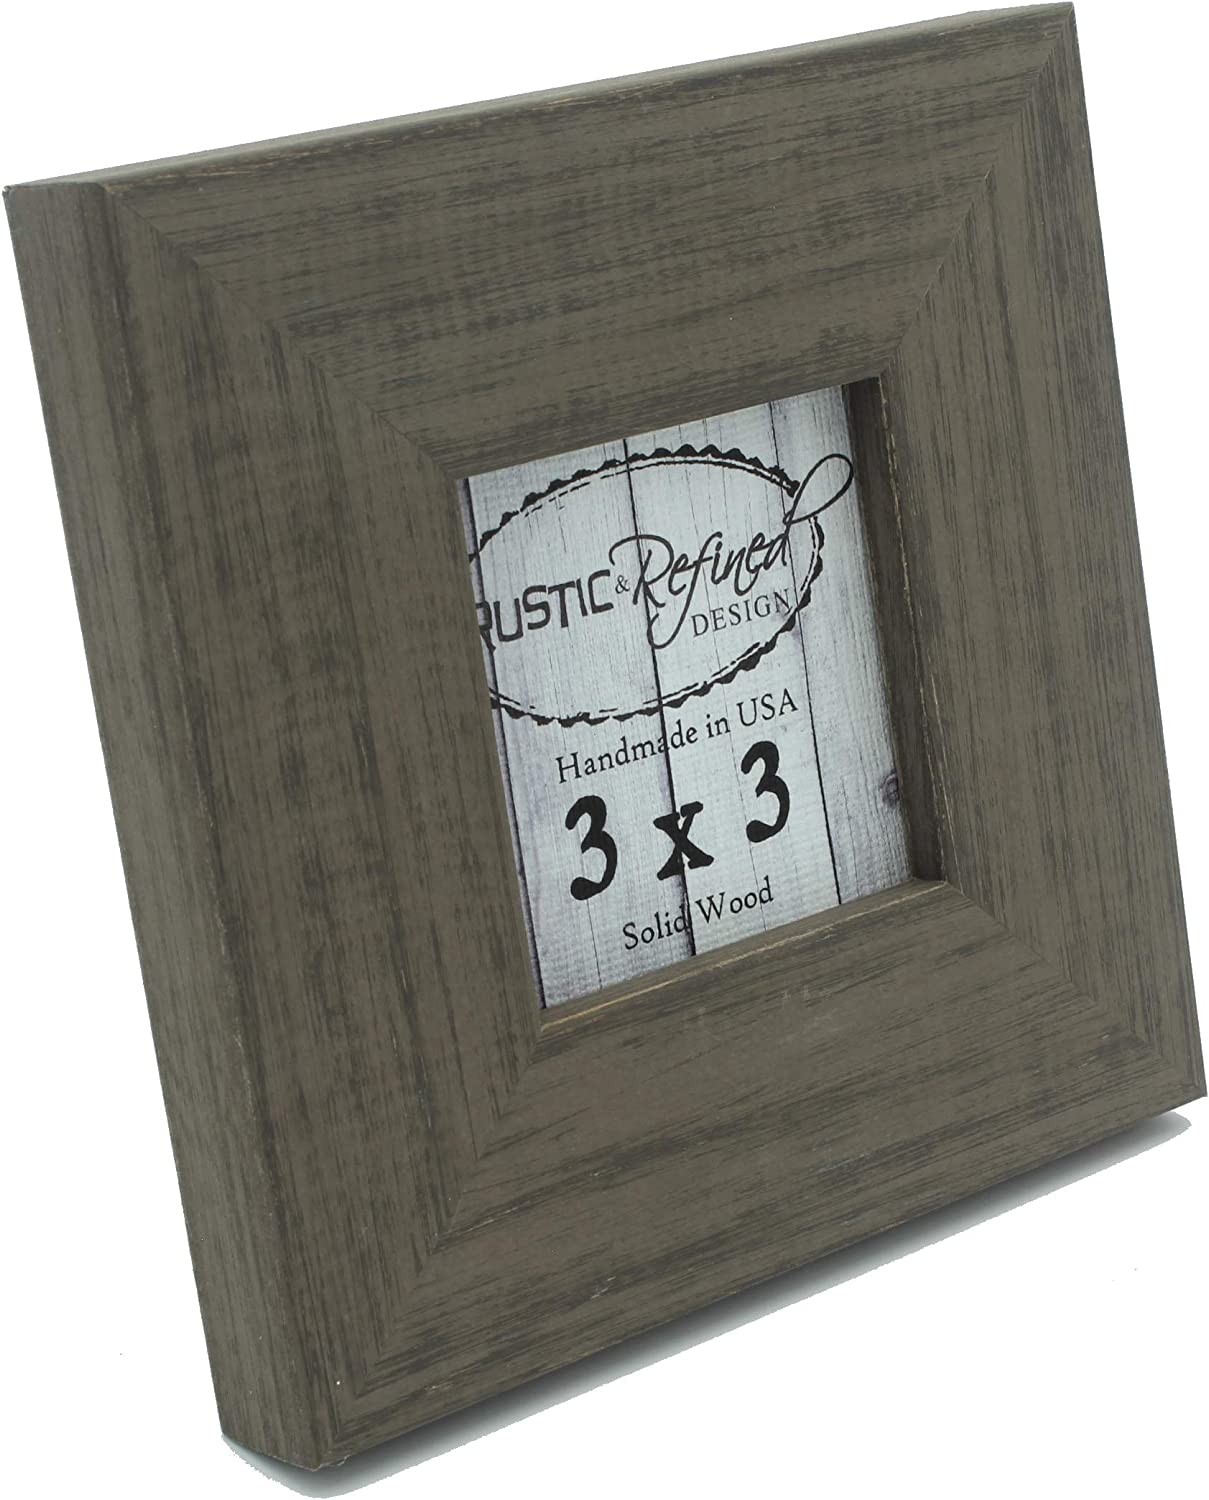 Rustic and Refined Design Country Colors Picture Frame - Solid Wood - Hand Made in USA (Whiskey Brown, 3x3)